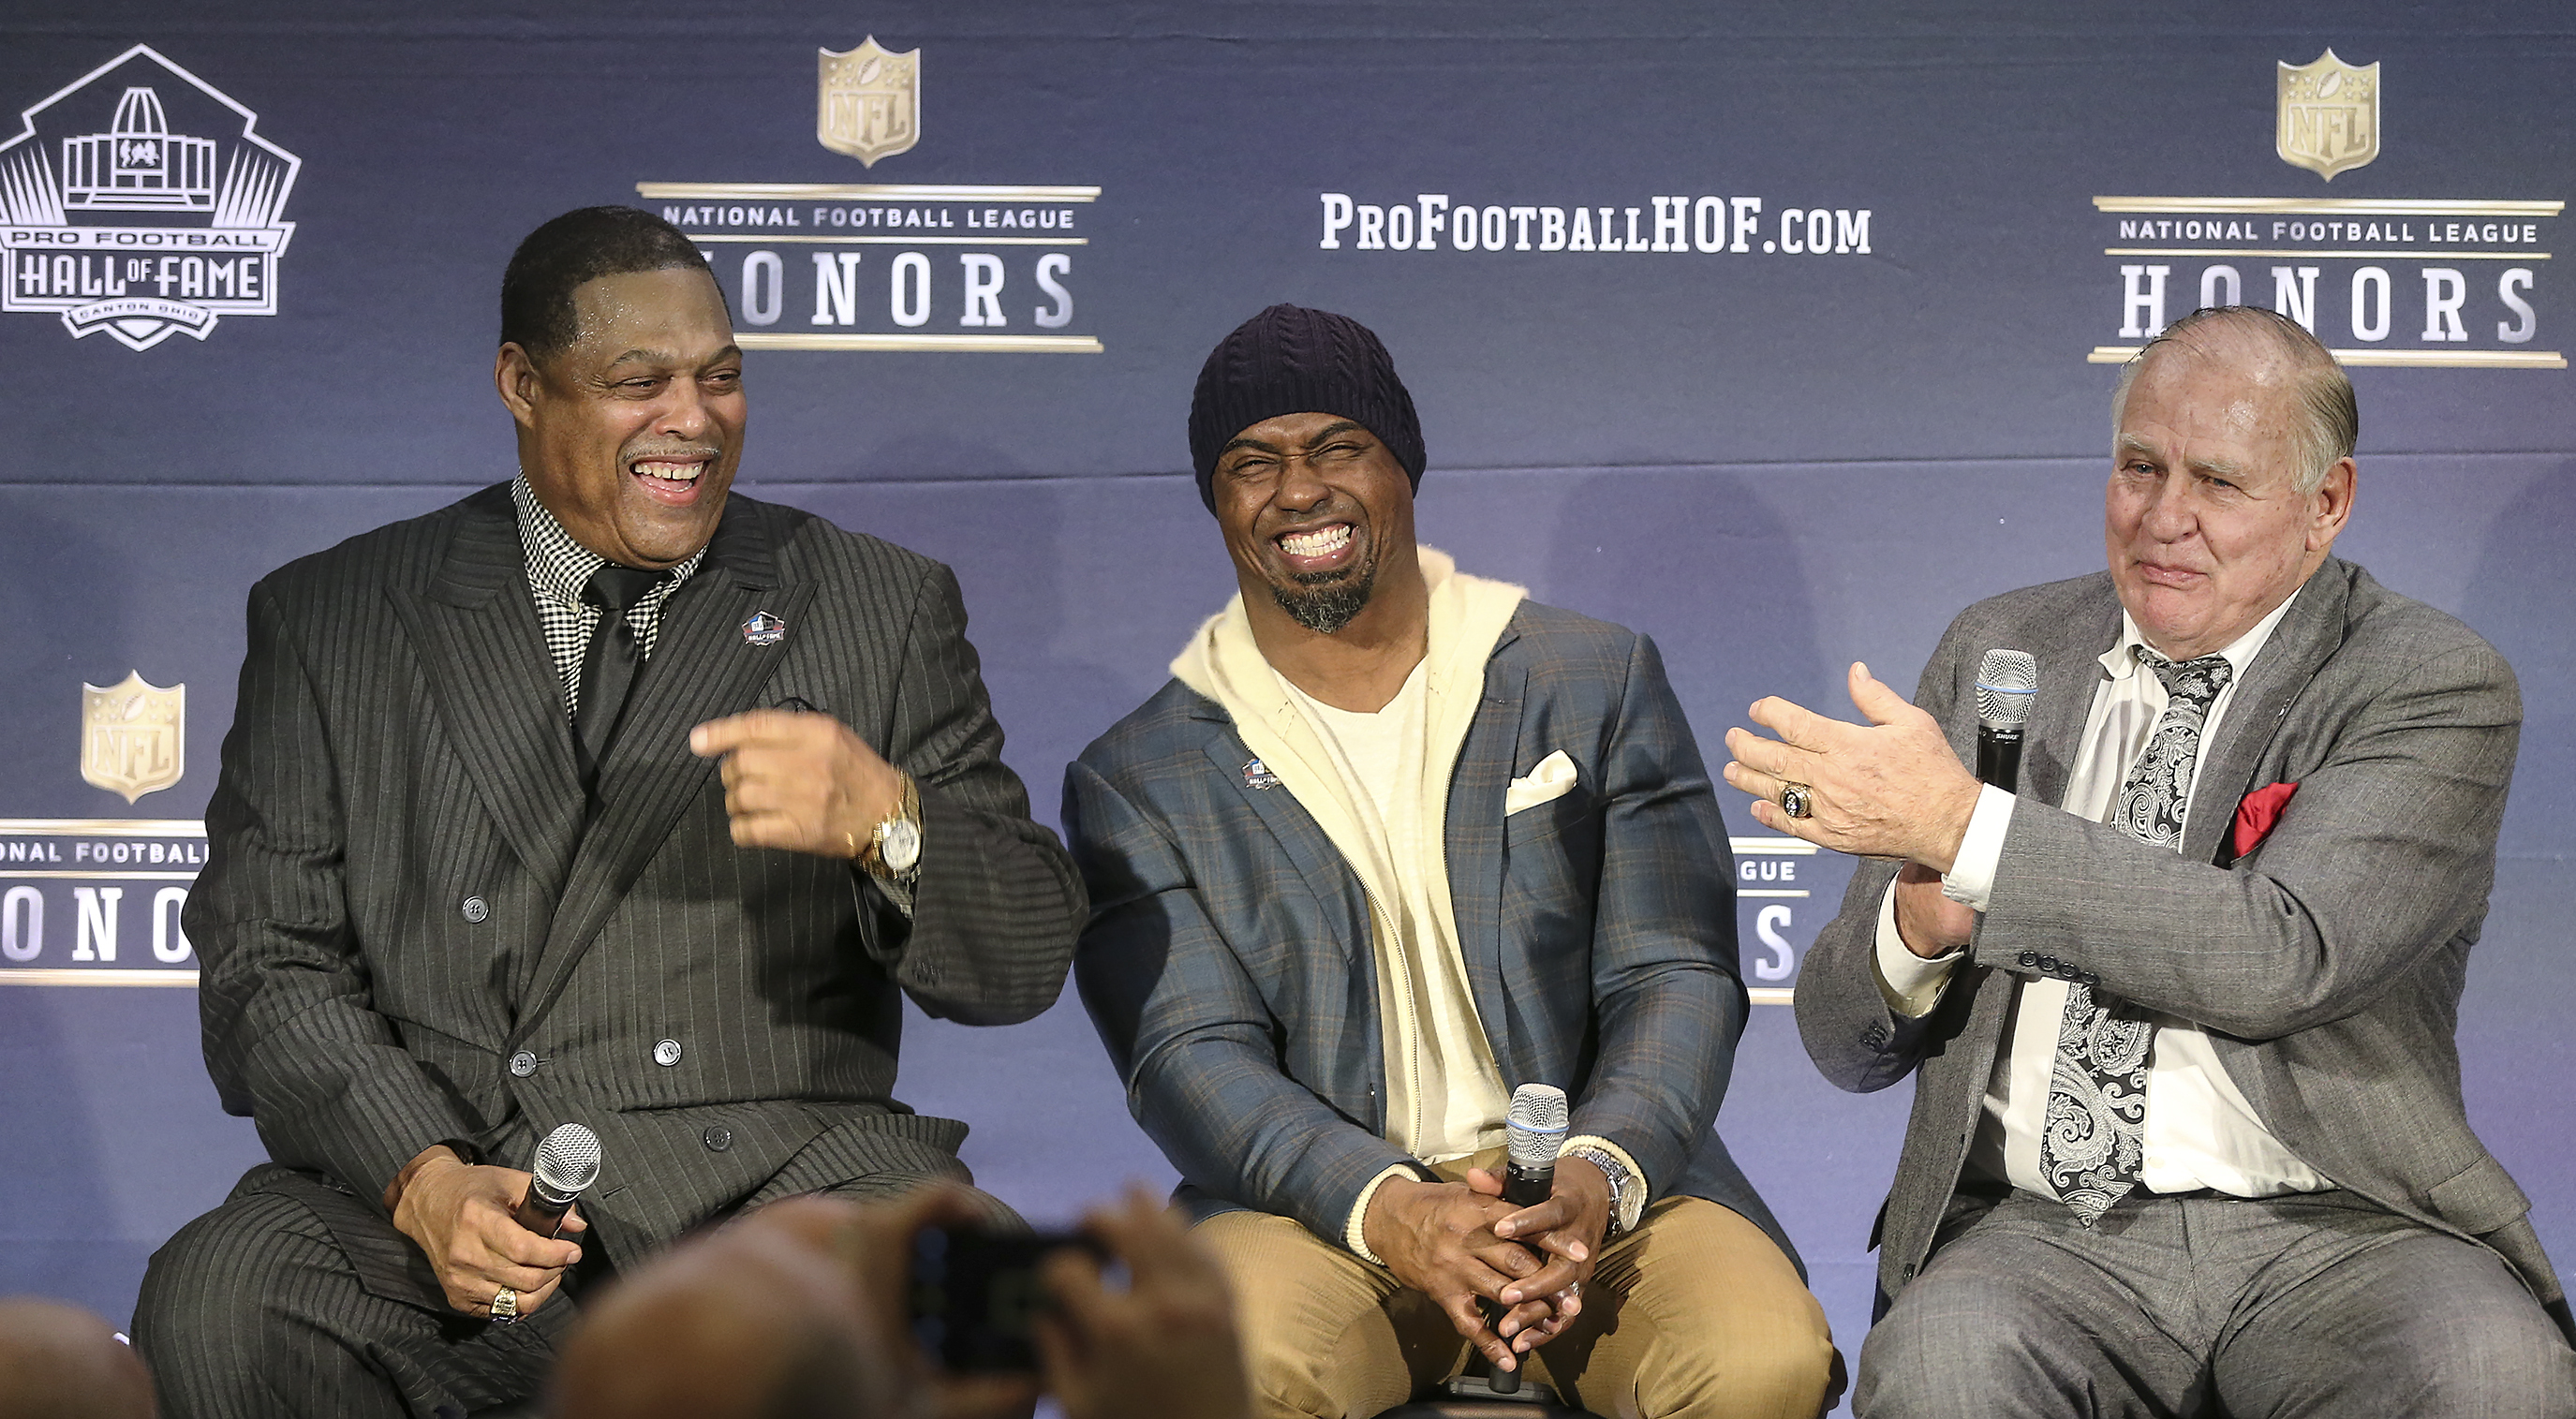 Brian Dawkins, center laughs at a story told by Jerry Kramer, right and Robert Brazile, left after they were elected to the 2018 NFL Hall of Fame at the University of Minnesota in Minneapolis, Saturday, February 3, 2018.